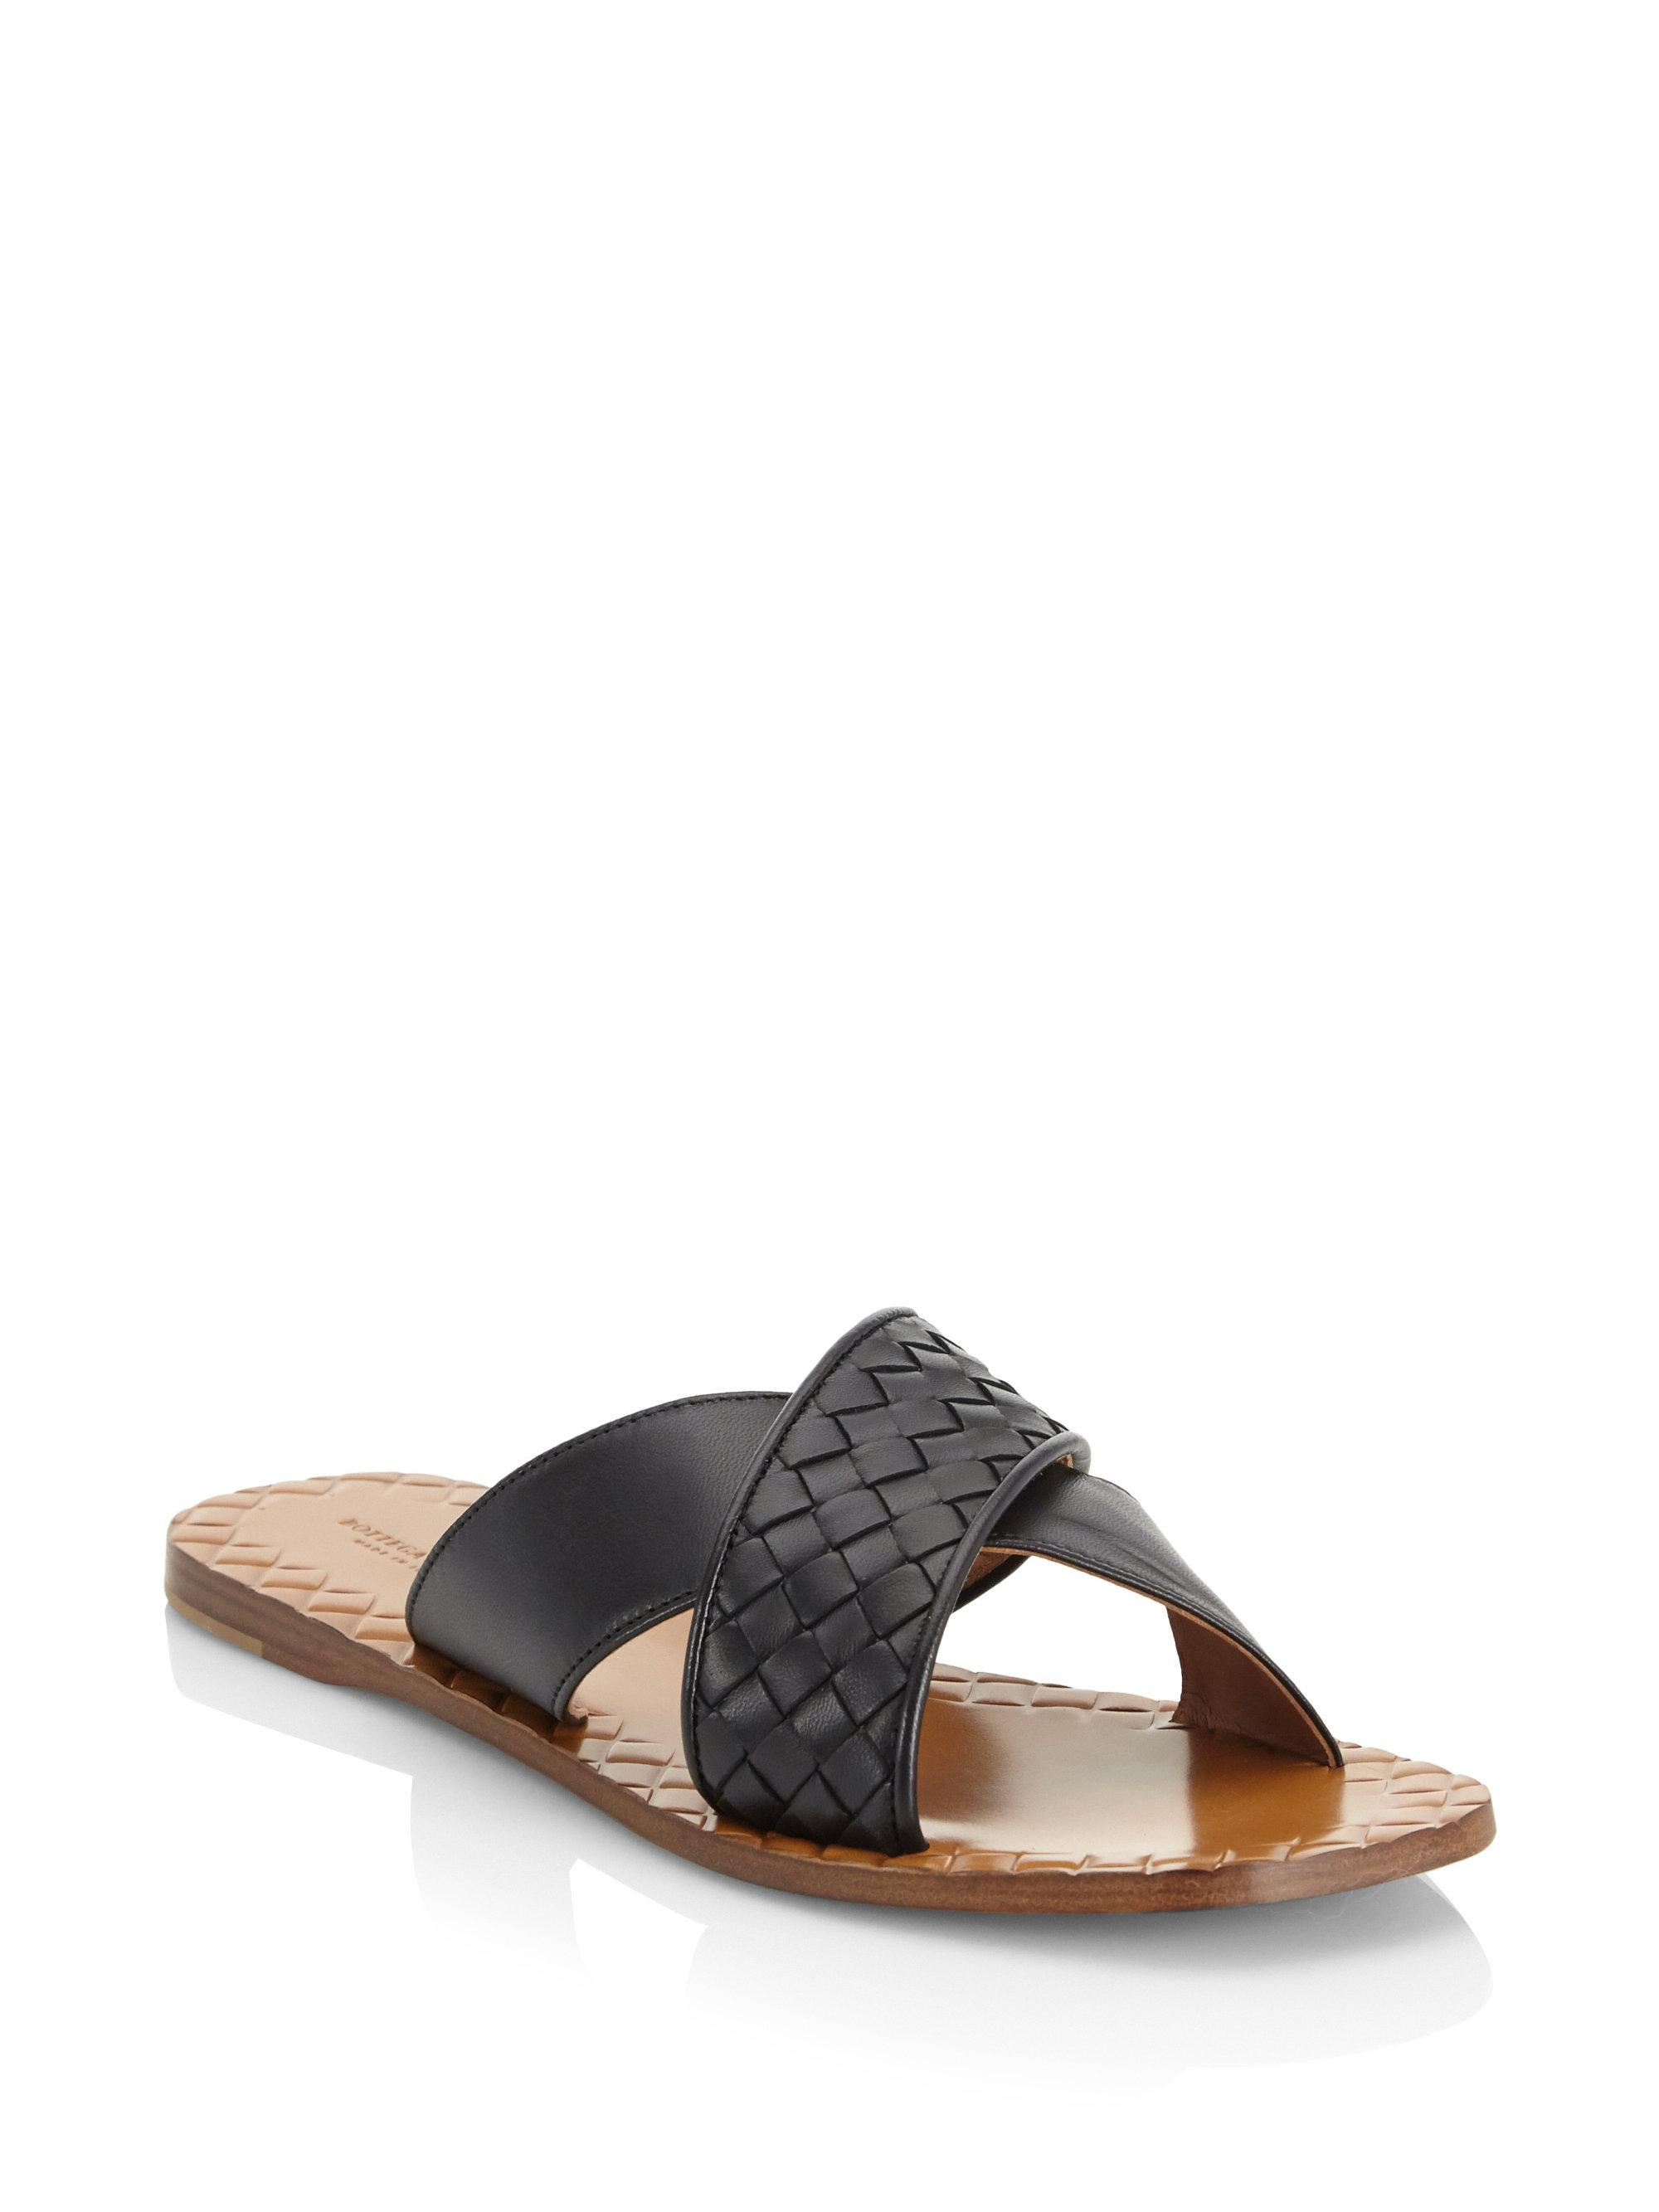 6b3b4220f Ayer sandals woven leather Veneta Bottega q4UHnwCrqT - thematically ...